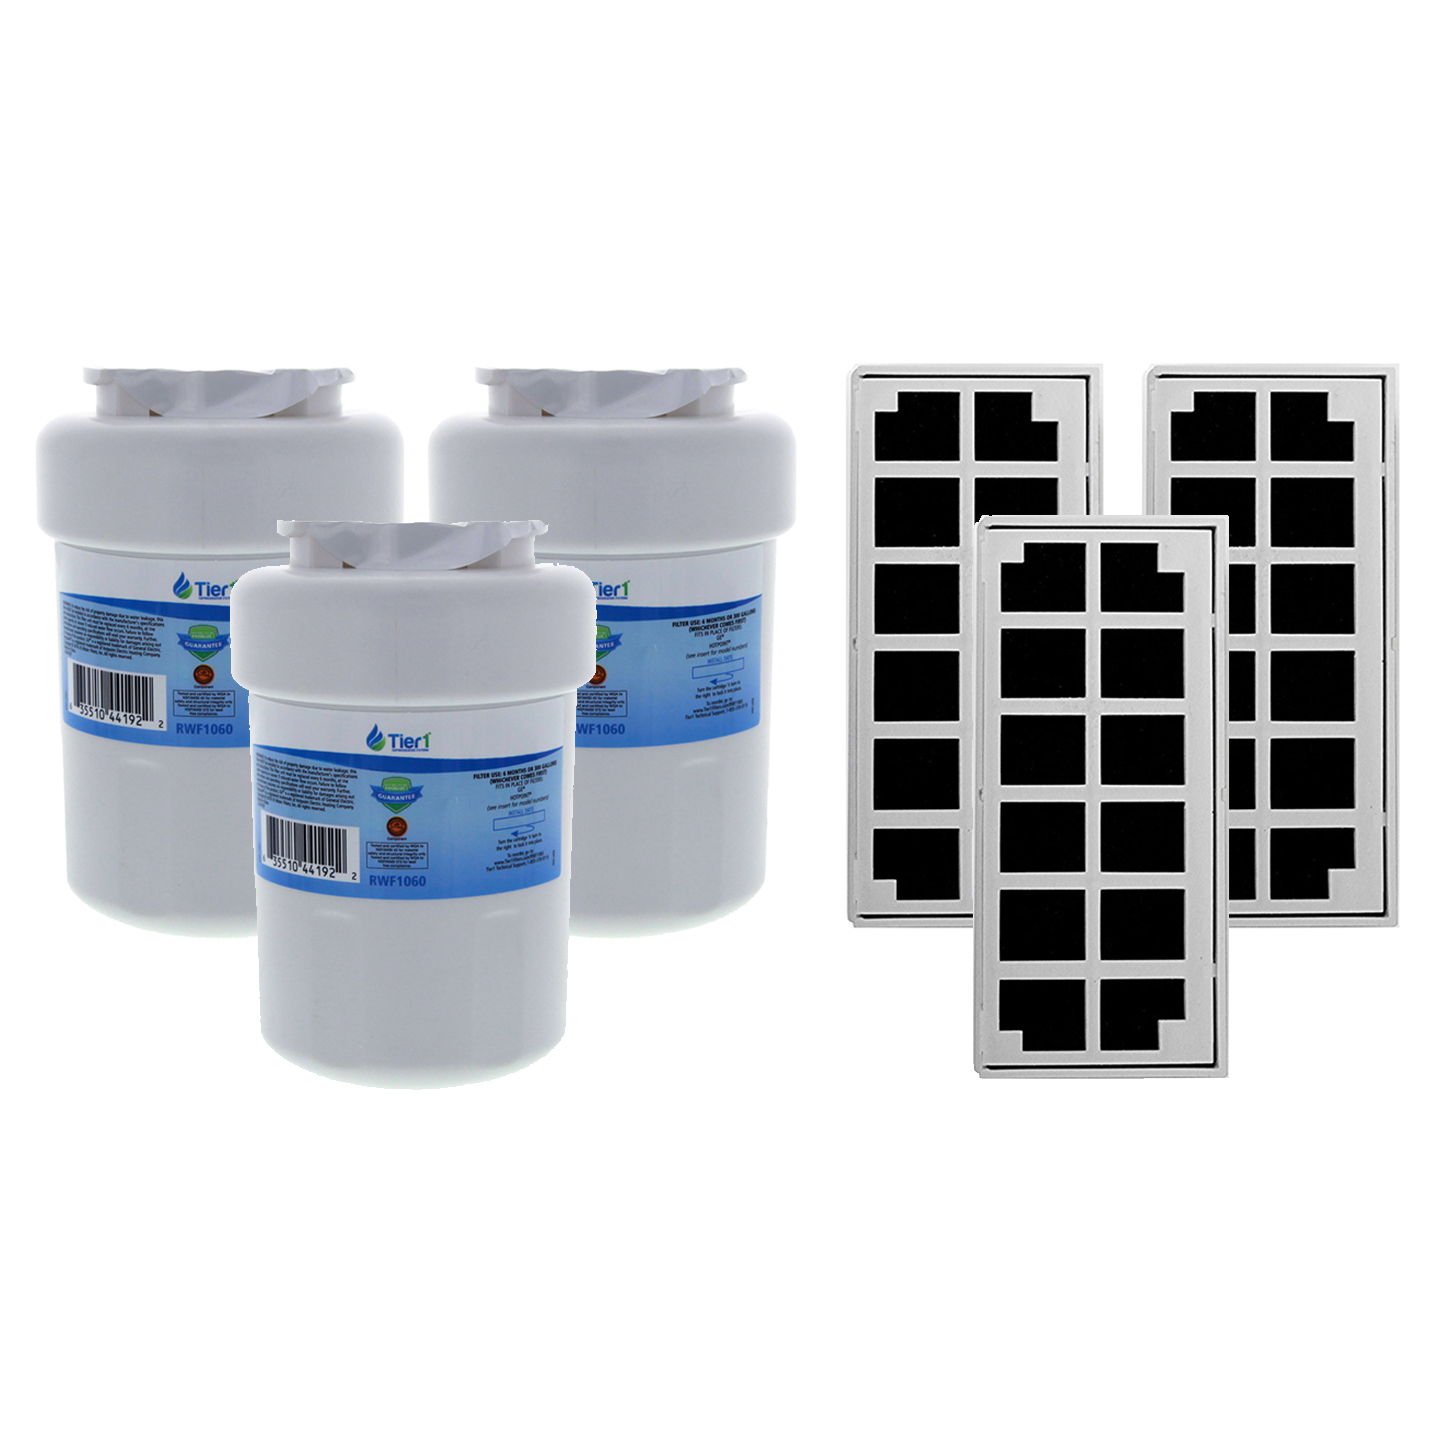 Tier1 Replacement for GE MWF SmartWater, MWFP, MWFA, GWF, GWFA, HWF, 46-9991, 469991, 469905, 469996 Water and Odor Filter Combo 3 Pack